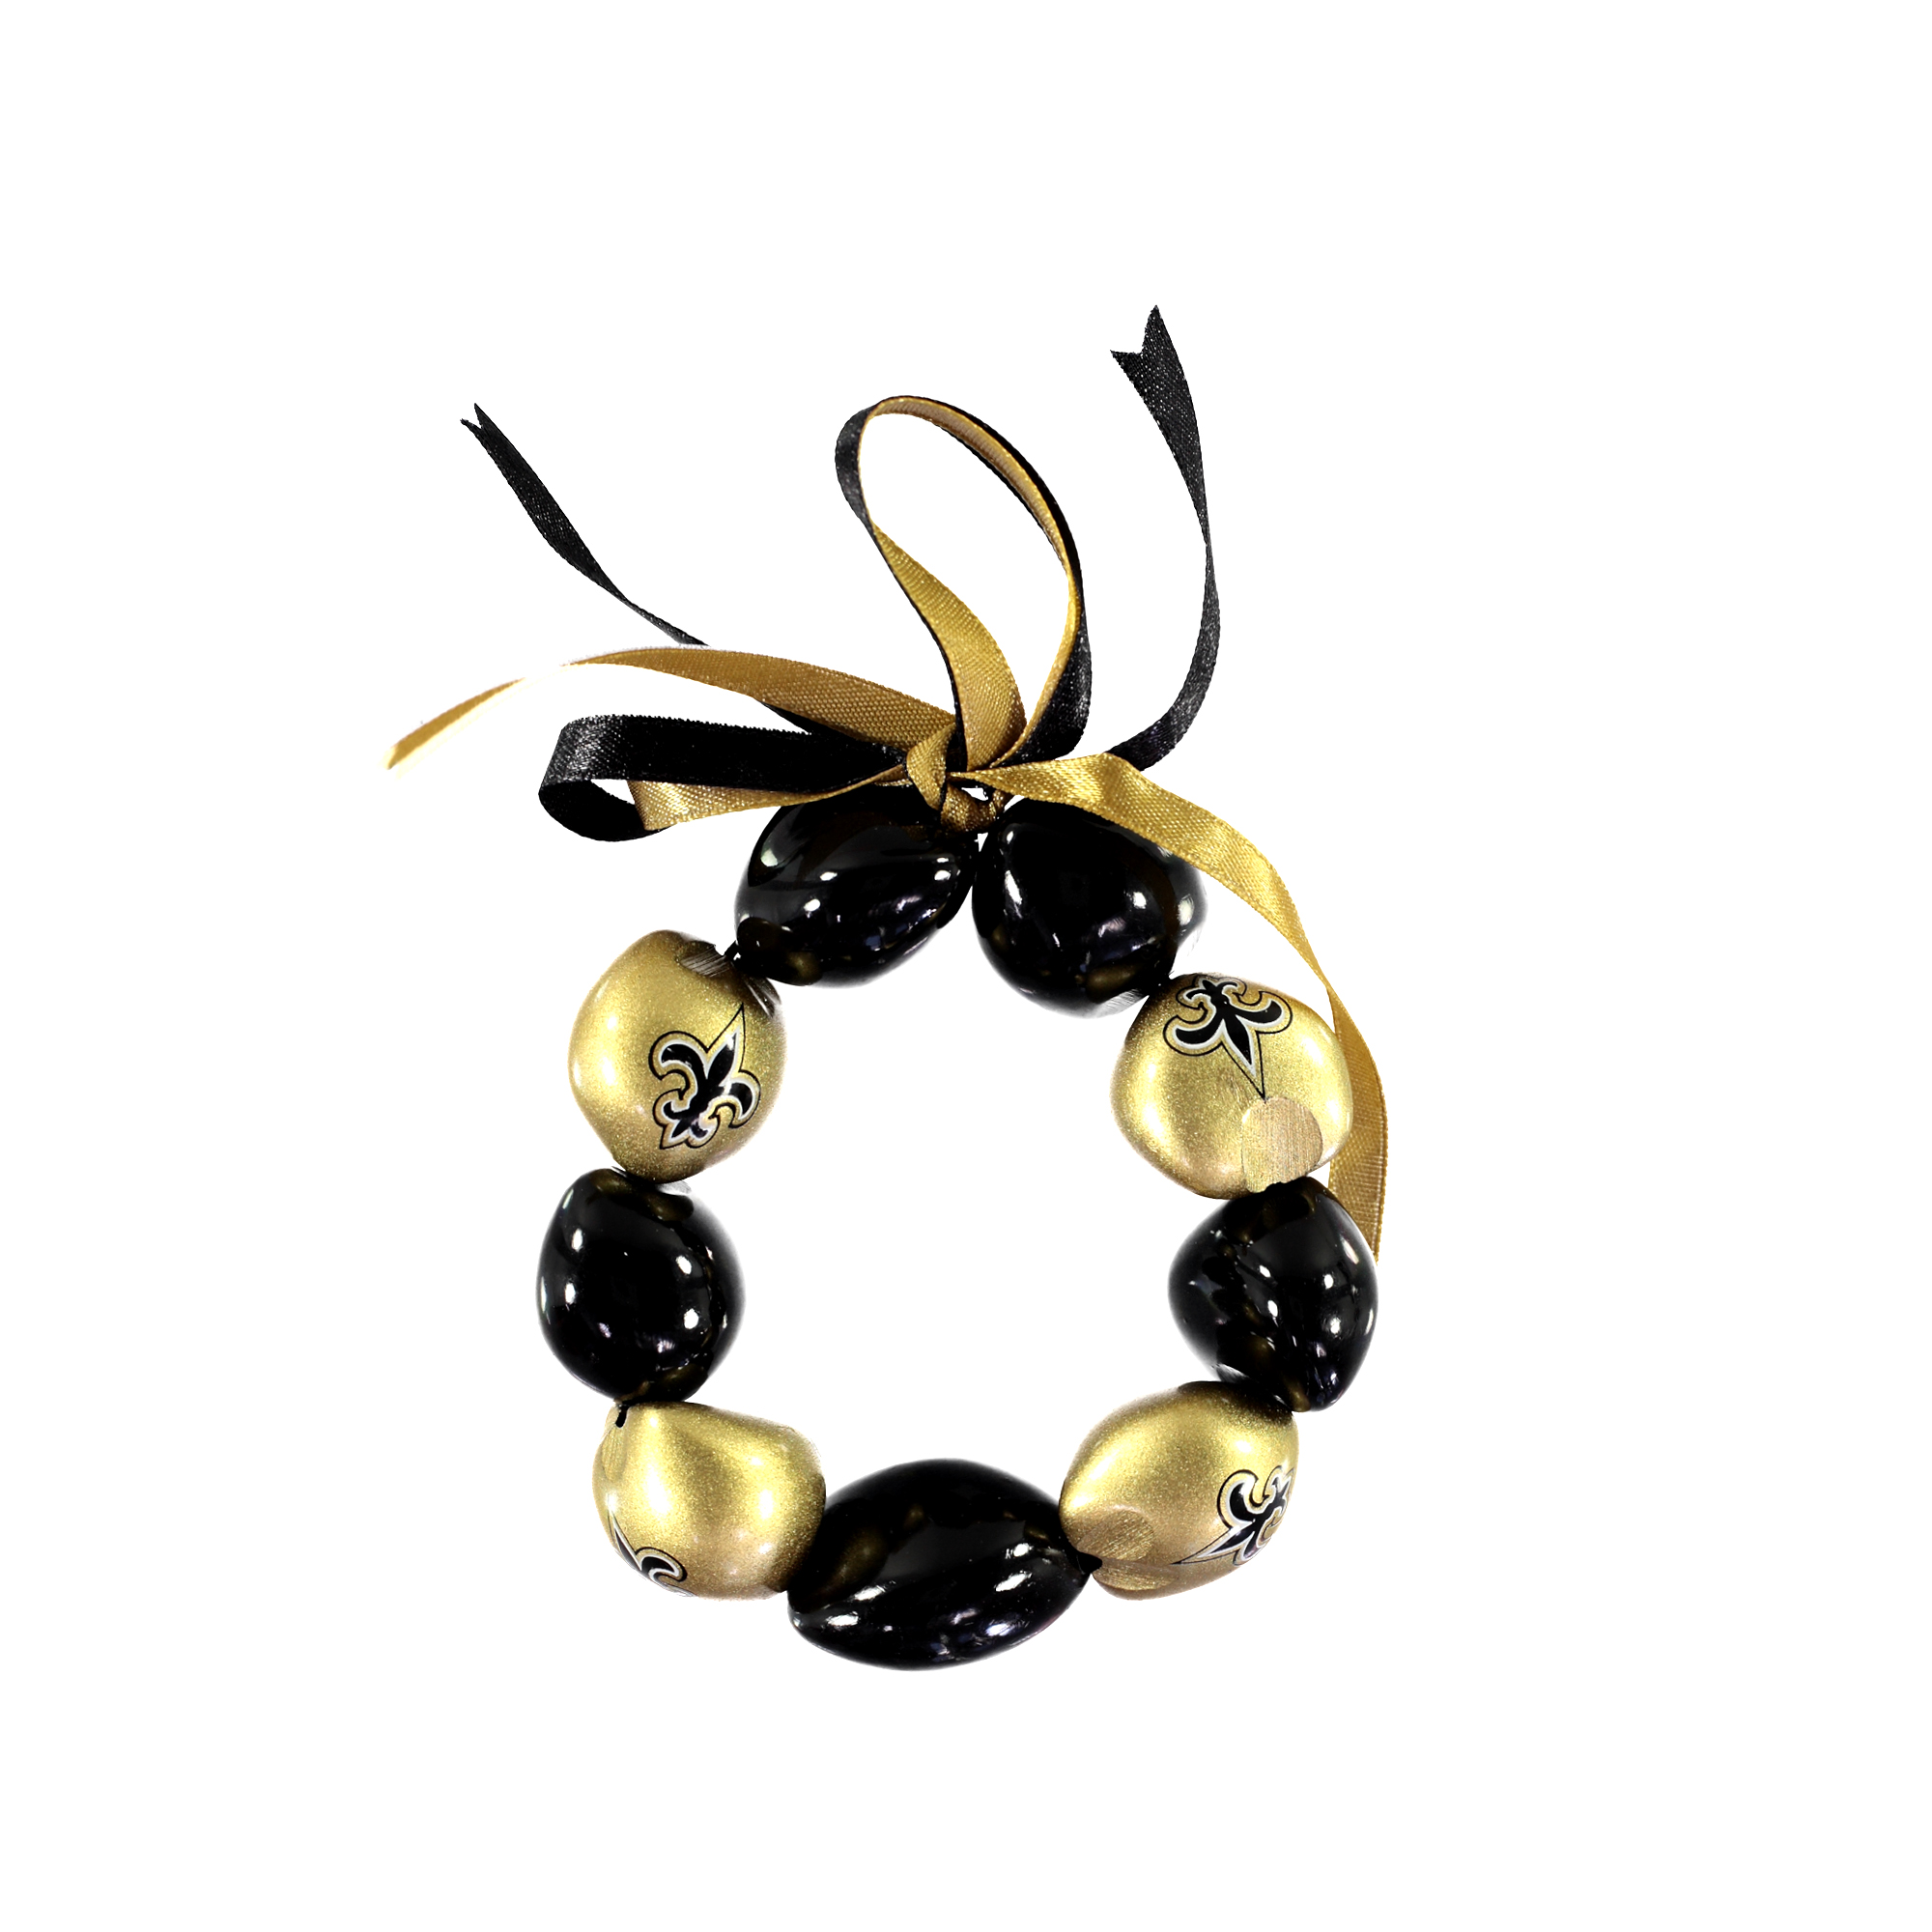 New Orleans Saints - Kukui Nut Bracelet